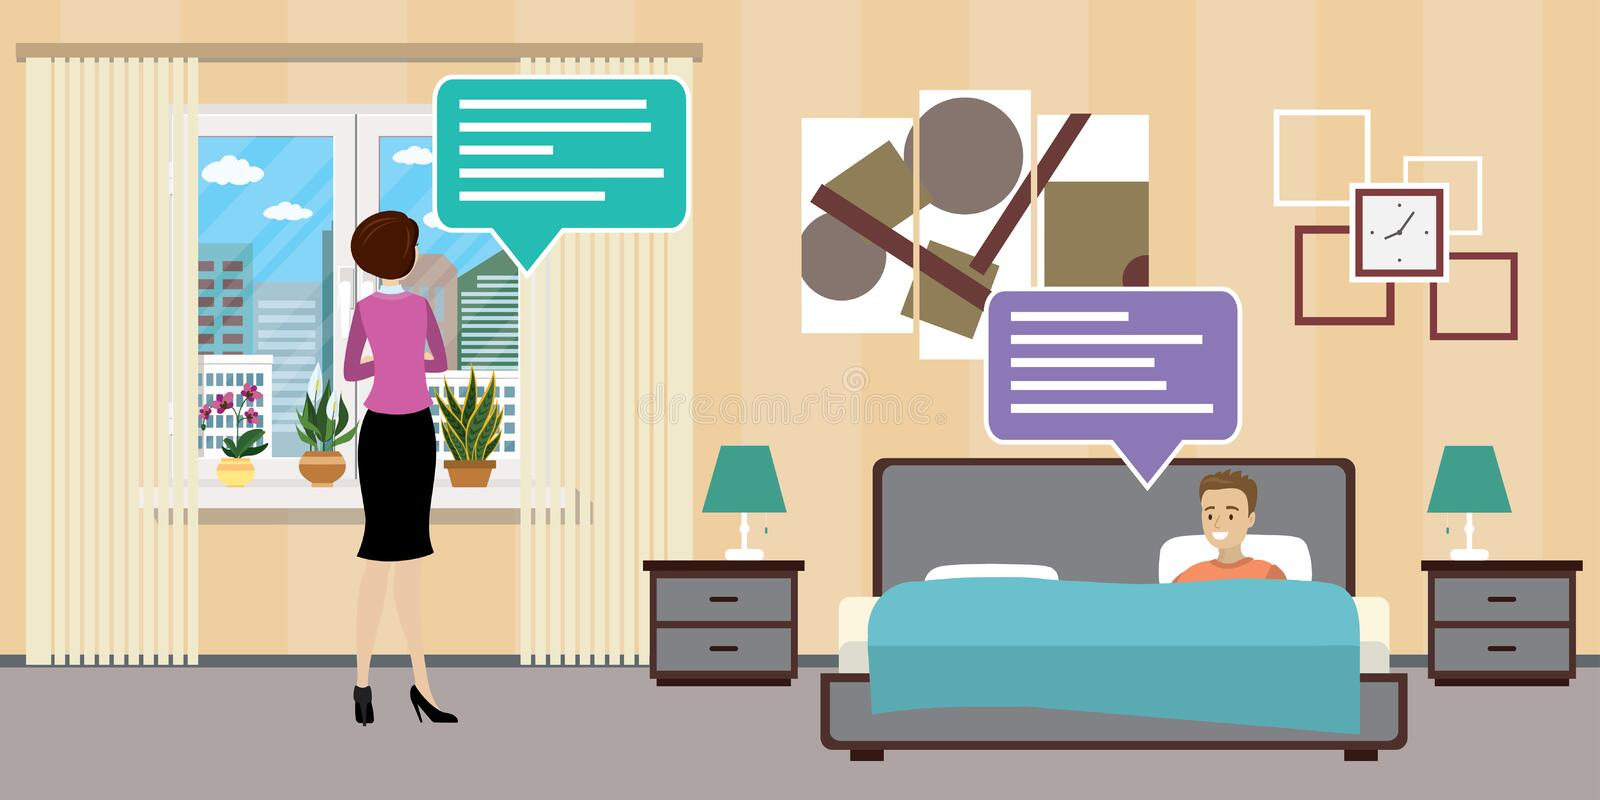 Woman and man talking in Hotel room or Bedroom, Interior flat de vector illustration